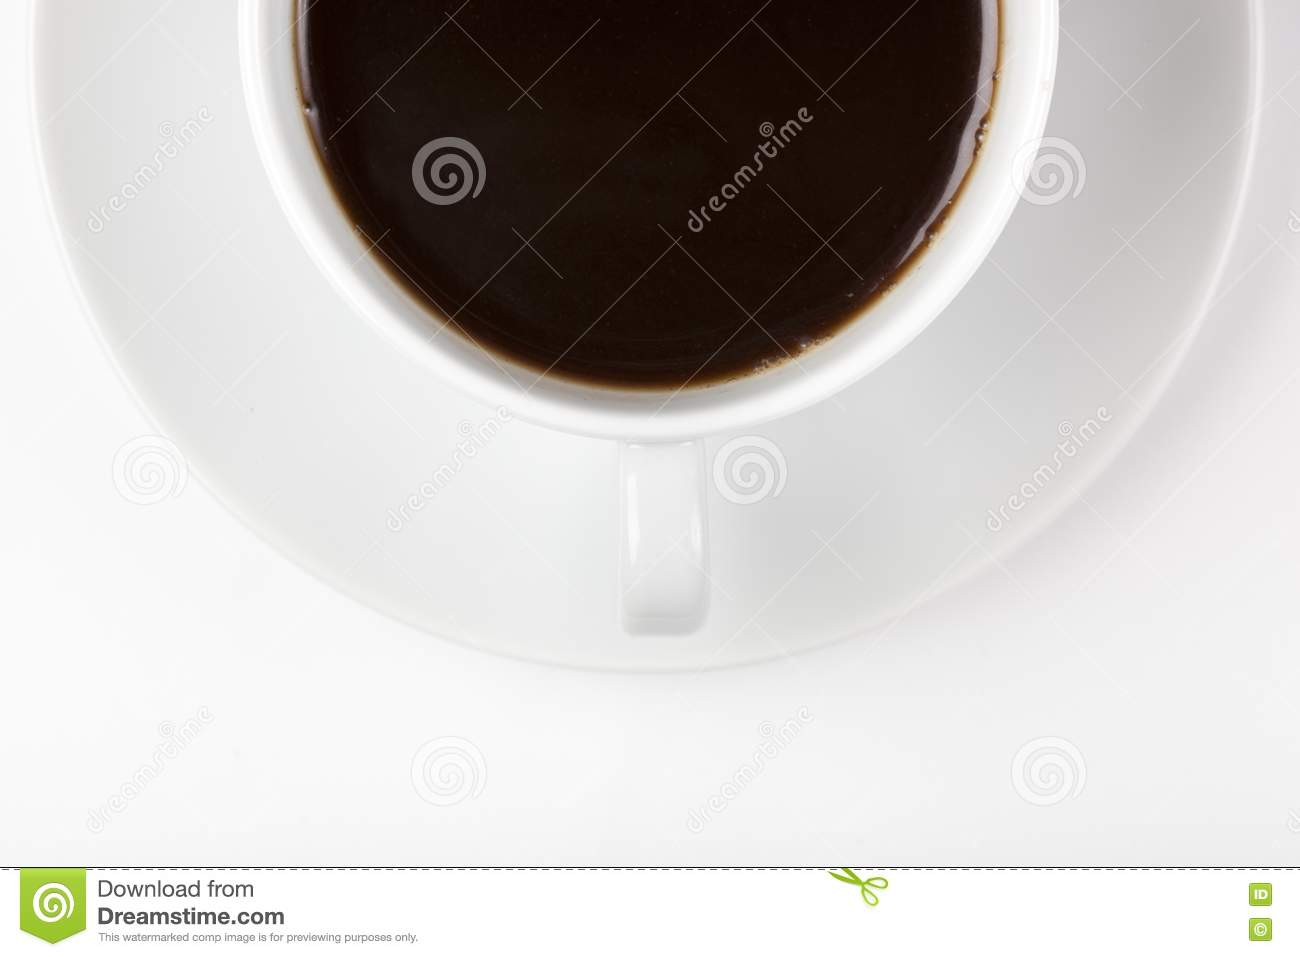 A white coffee cup with brown coffee